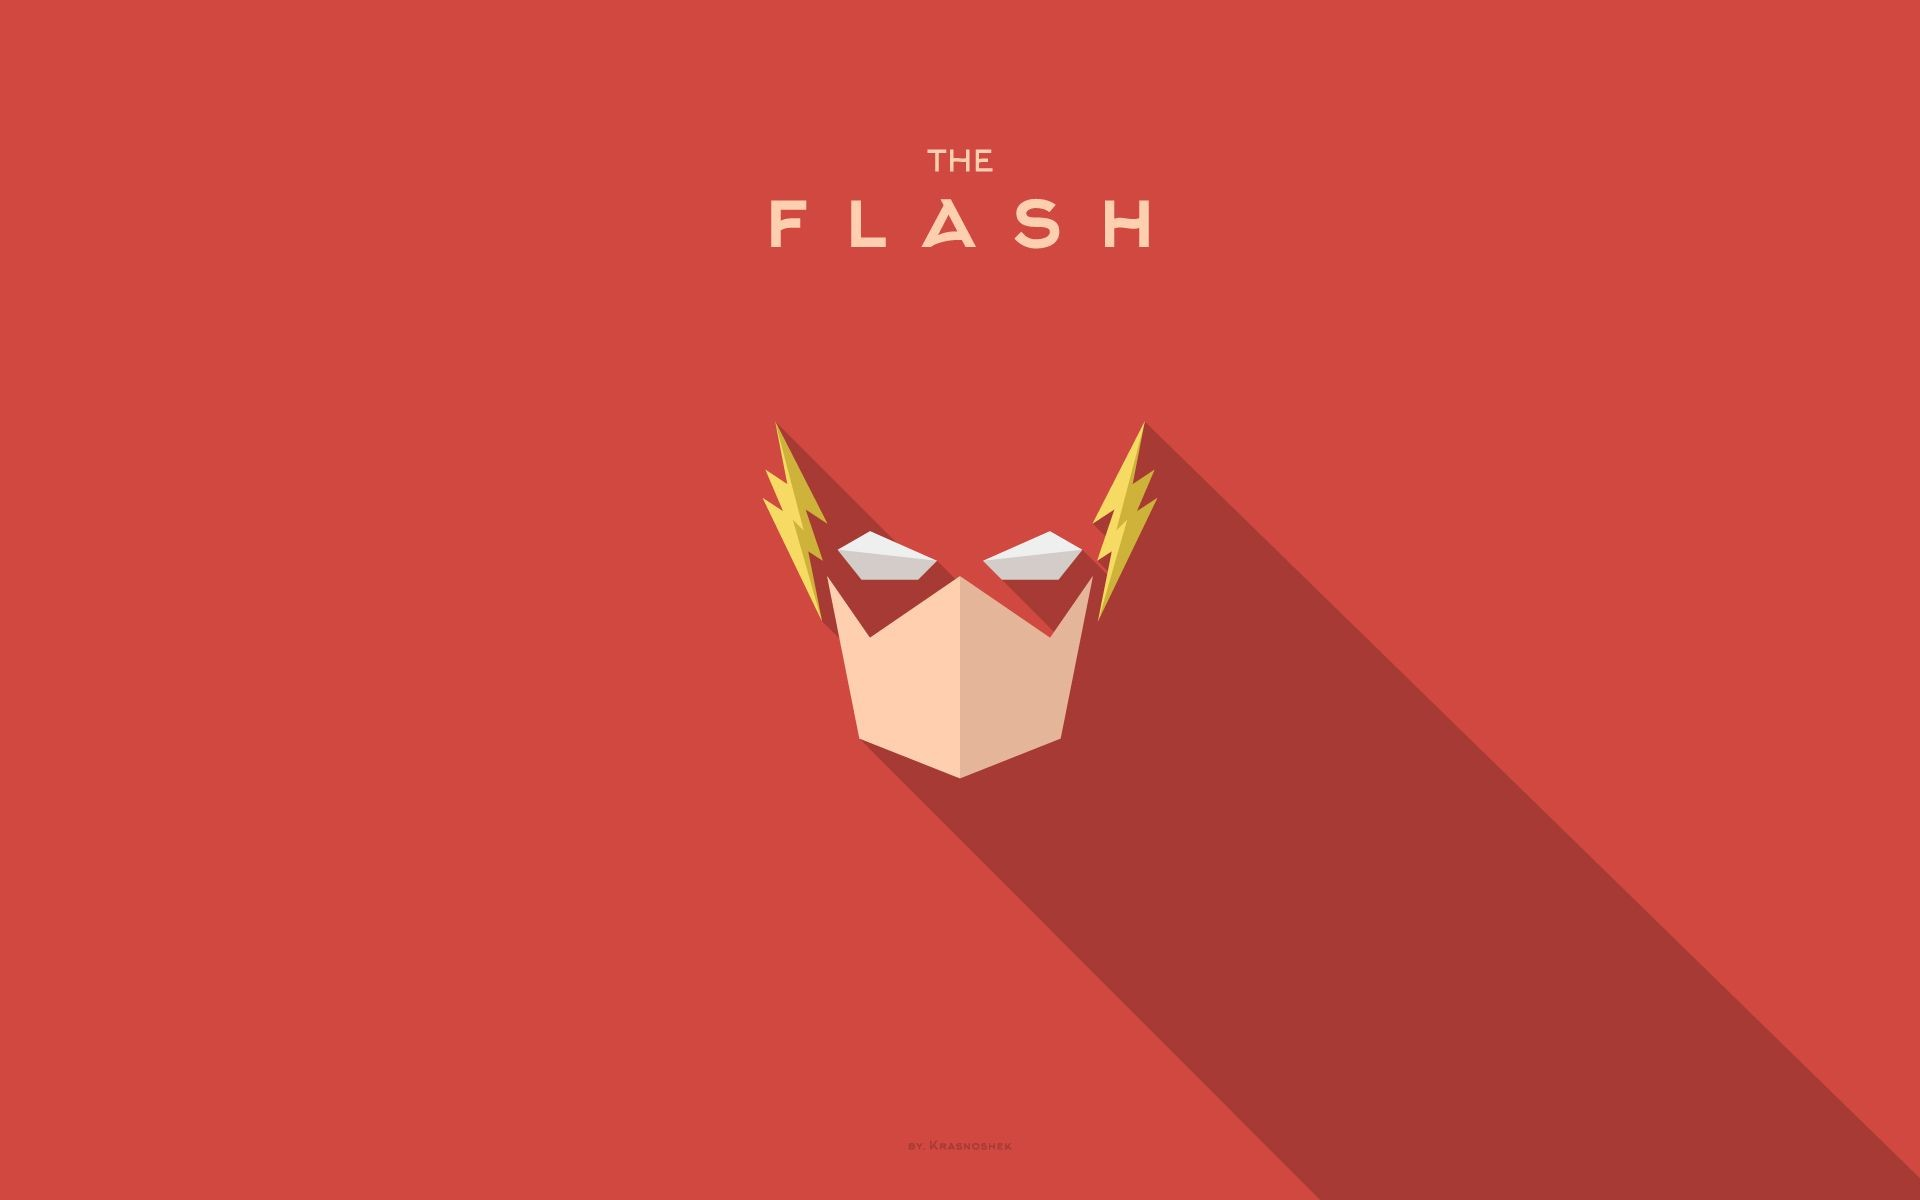 The Flash Wallpaper Fantastic The Flash Images HD